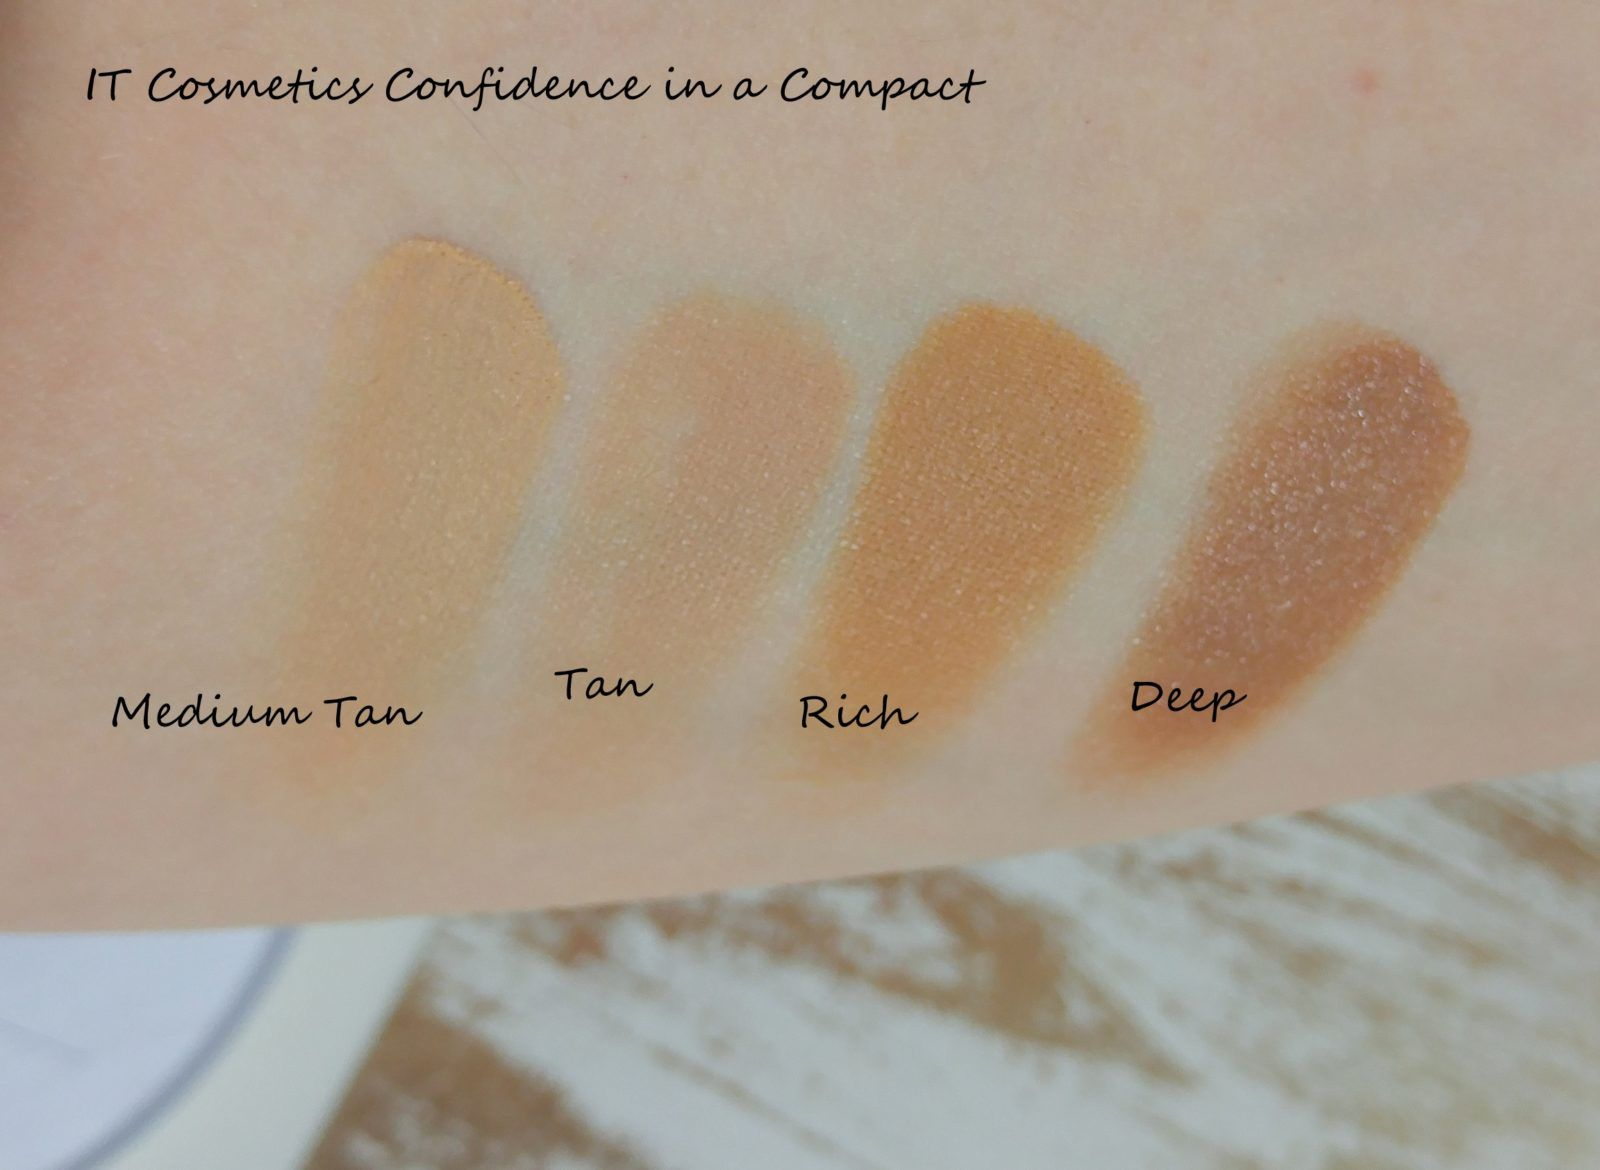 Confidence In A Compact by IT Cosmetics #3